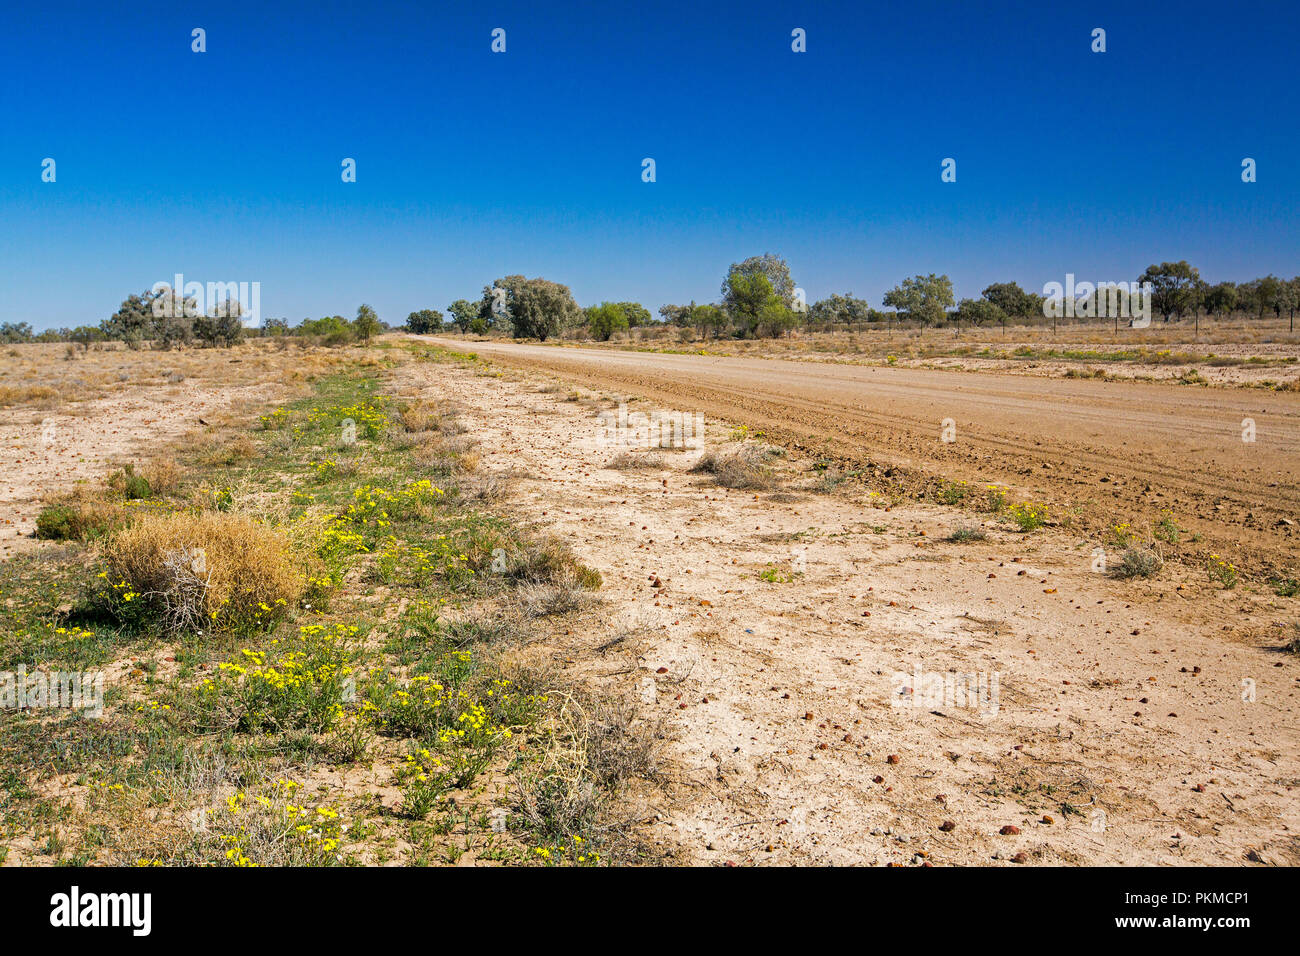 Australian outback road slicing through landscape daubed with sparse  vegetation & wildflowers & stretching to distant horizon under blue sky - Stock Image